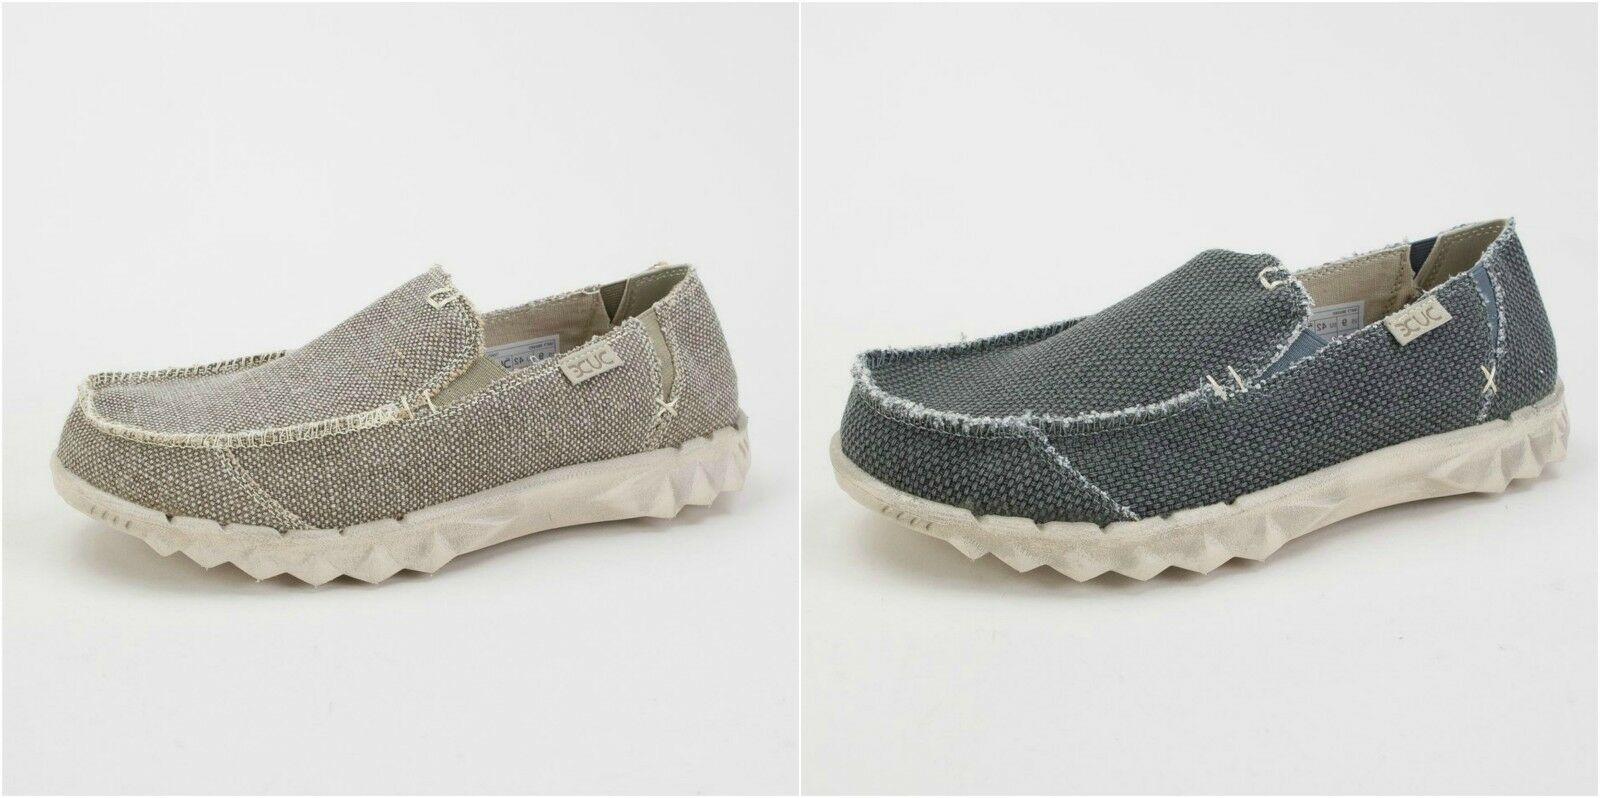 Mens Hey Dude- Farty Braided - Slip Ons - Black & Tundra - Great Price!